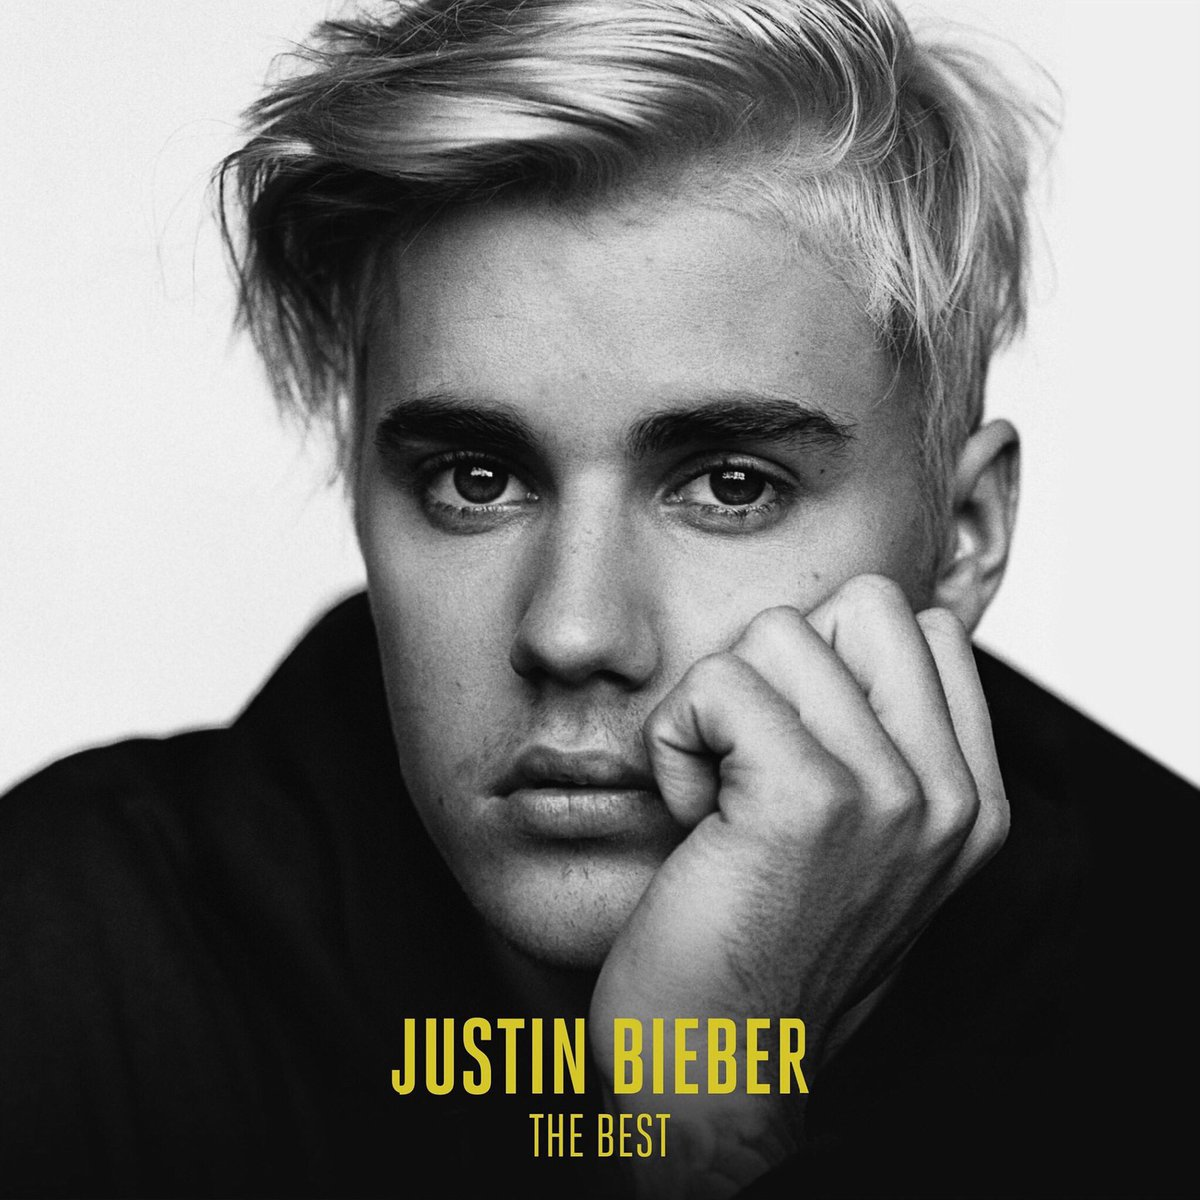 Justin Bieber is releasing new Album on February 27 called &quot;The Best&quot;.  #10YearsOfBieber <br>http://pic.twitter.com/vbxTs2yrME